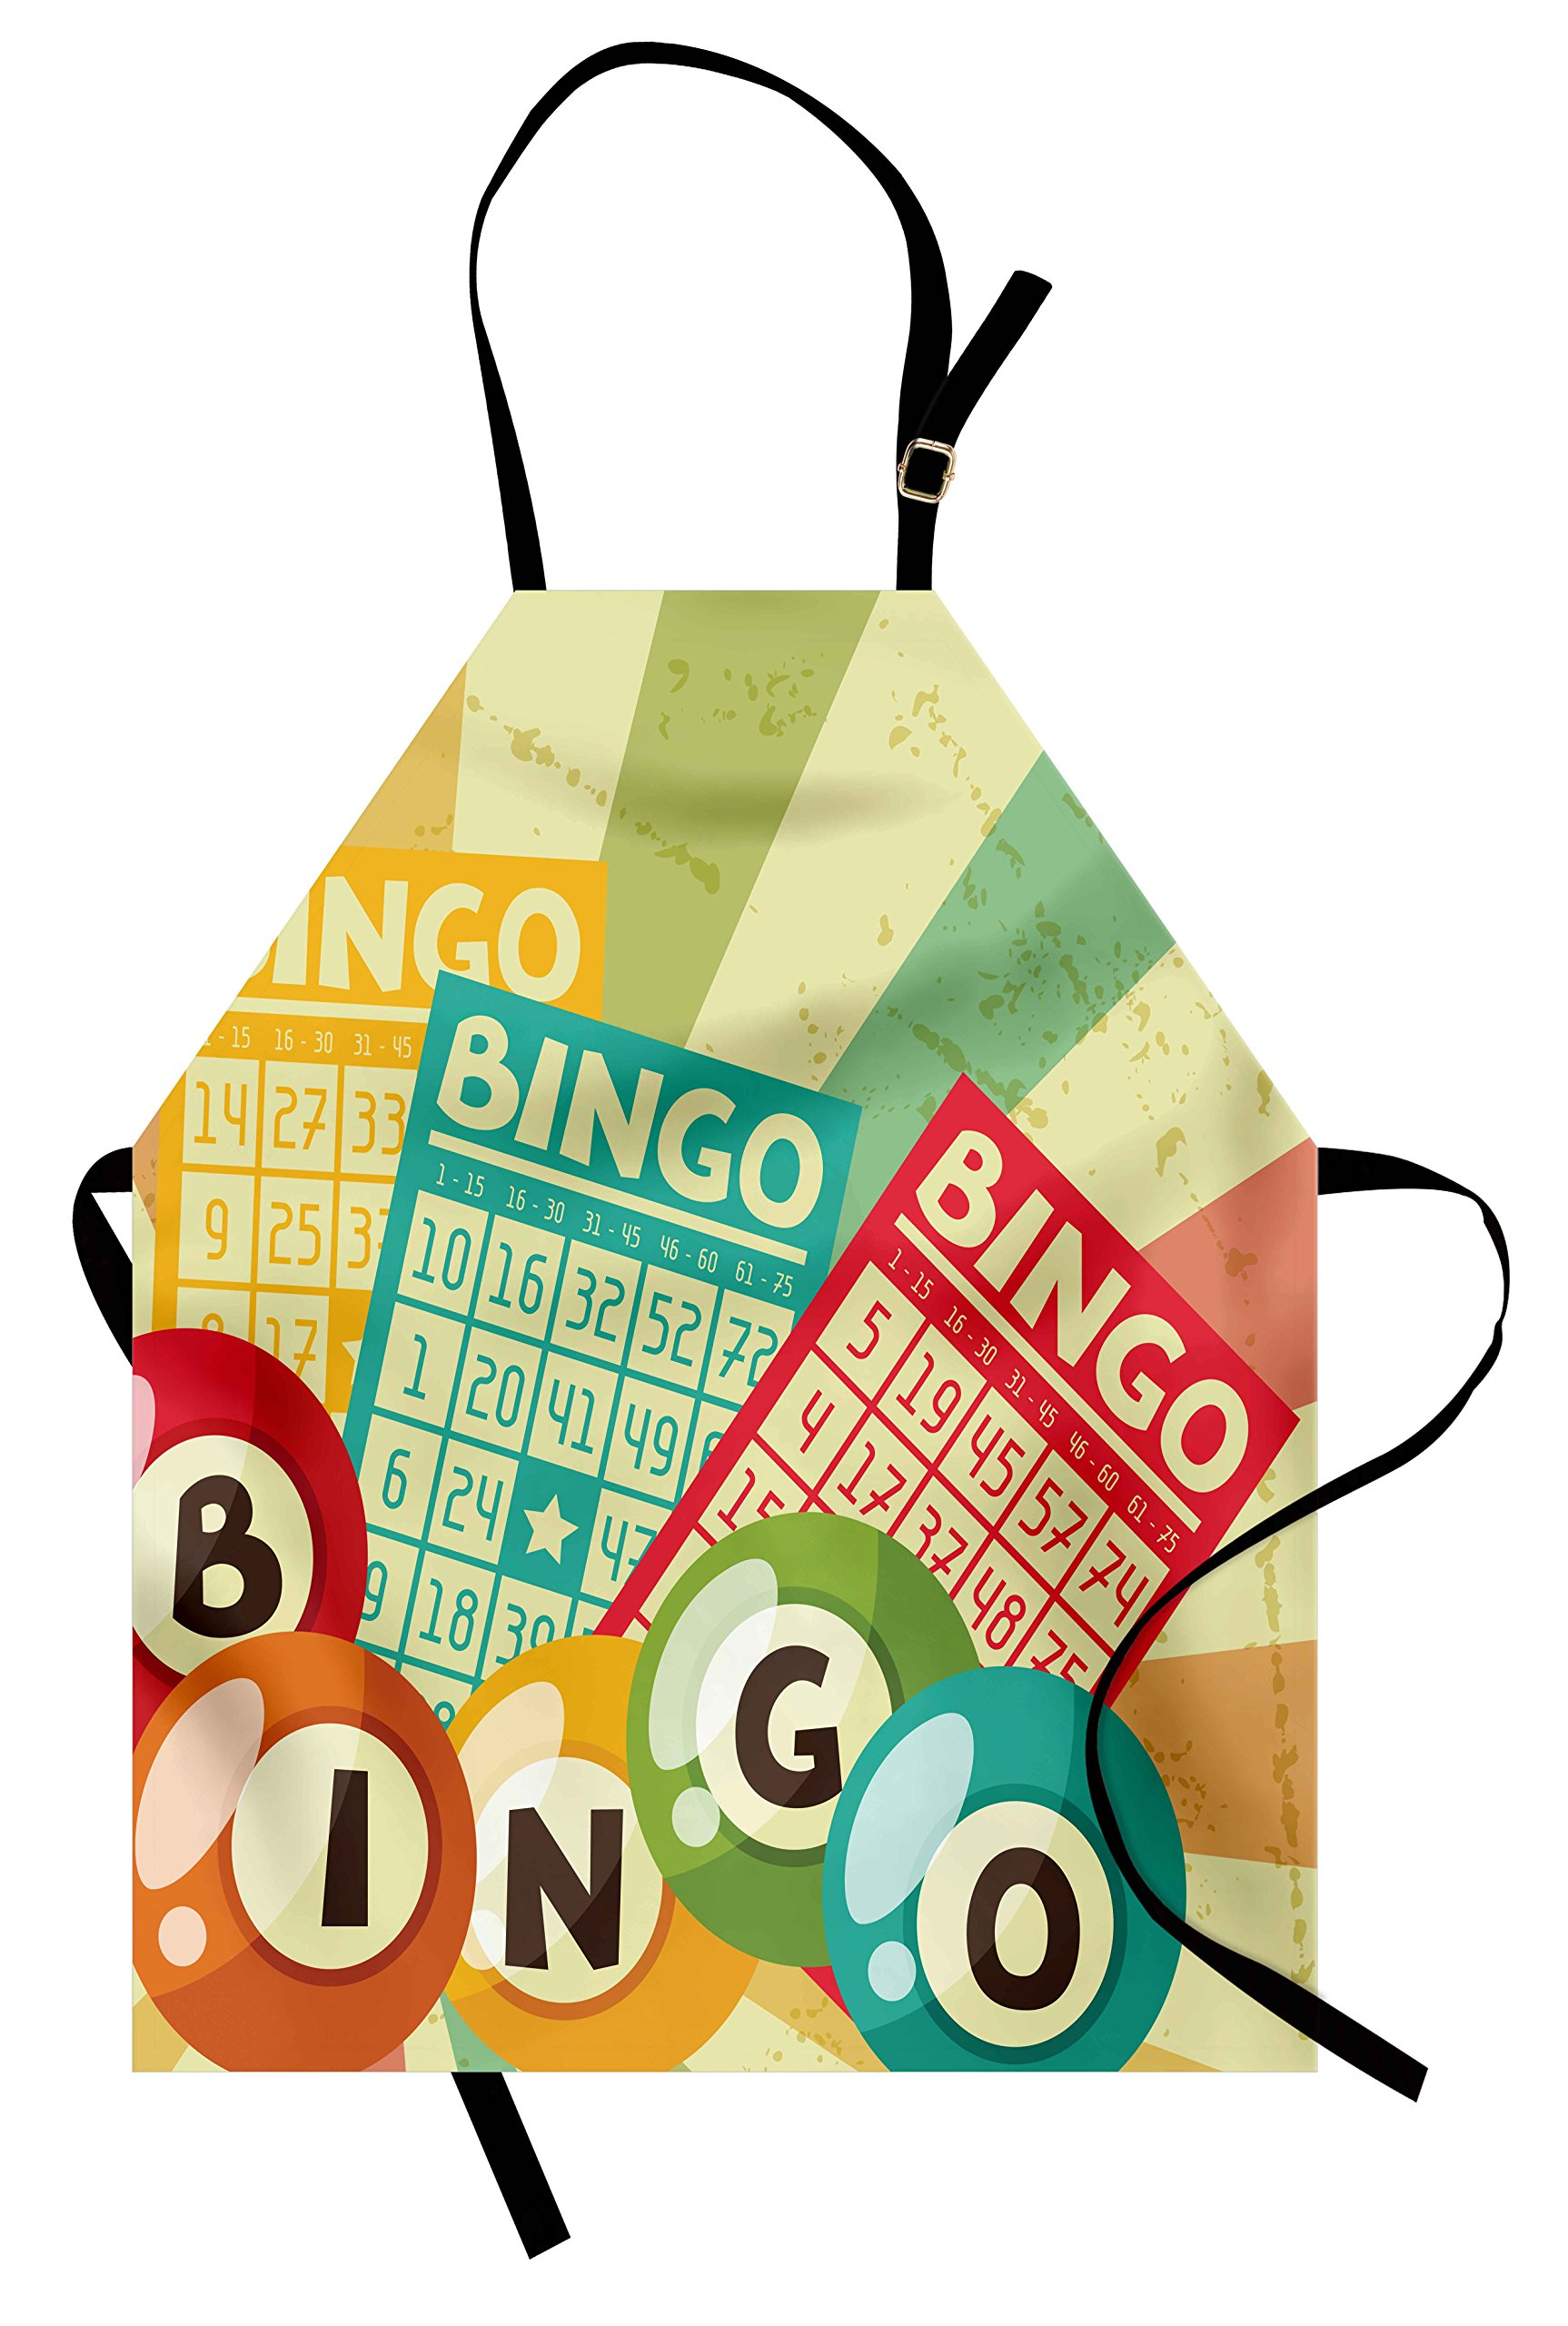 Ambesonne Vintage Apron, Bingo Game with Ball and Cards Pop Art Stylized Lottery Hobby Celebration Theme, Unisex Kitchen Bib Apron with Adjustable Neck for Cooking Baking Gardening, Multicolor by Ambesonne